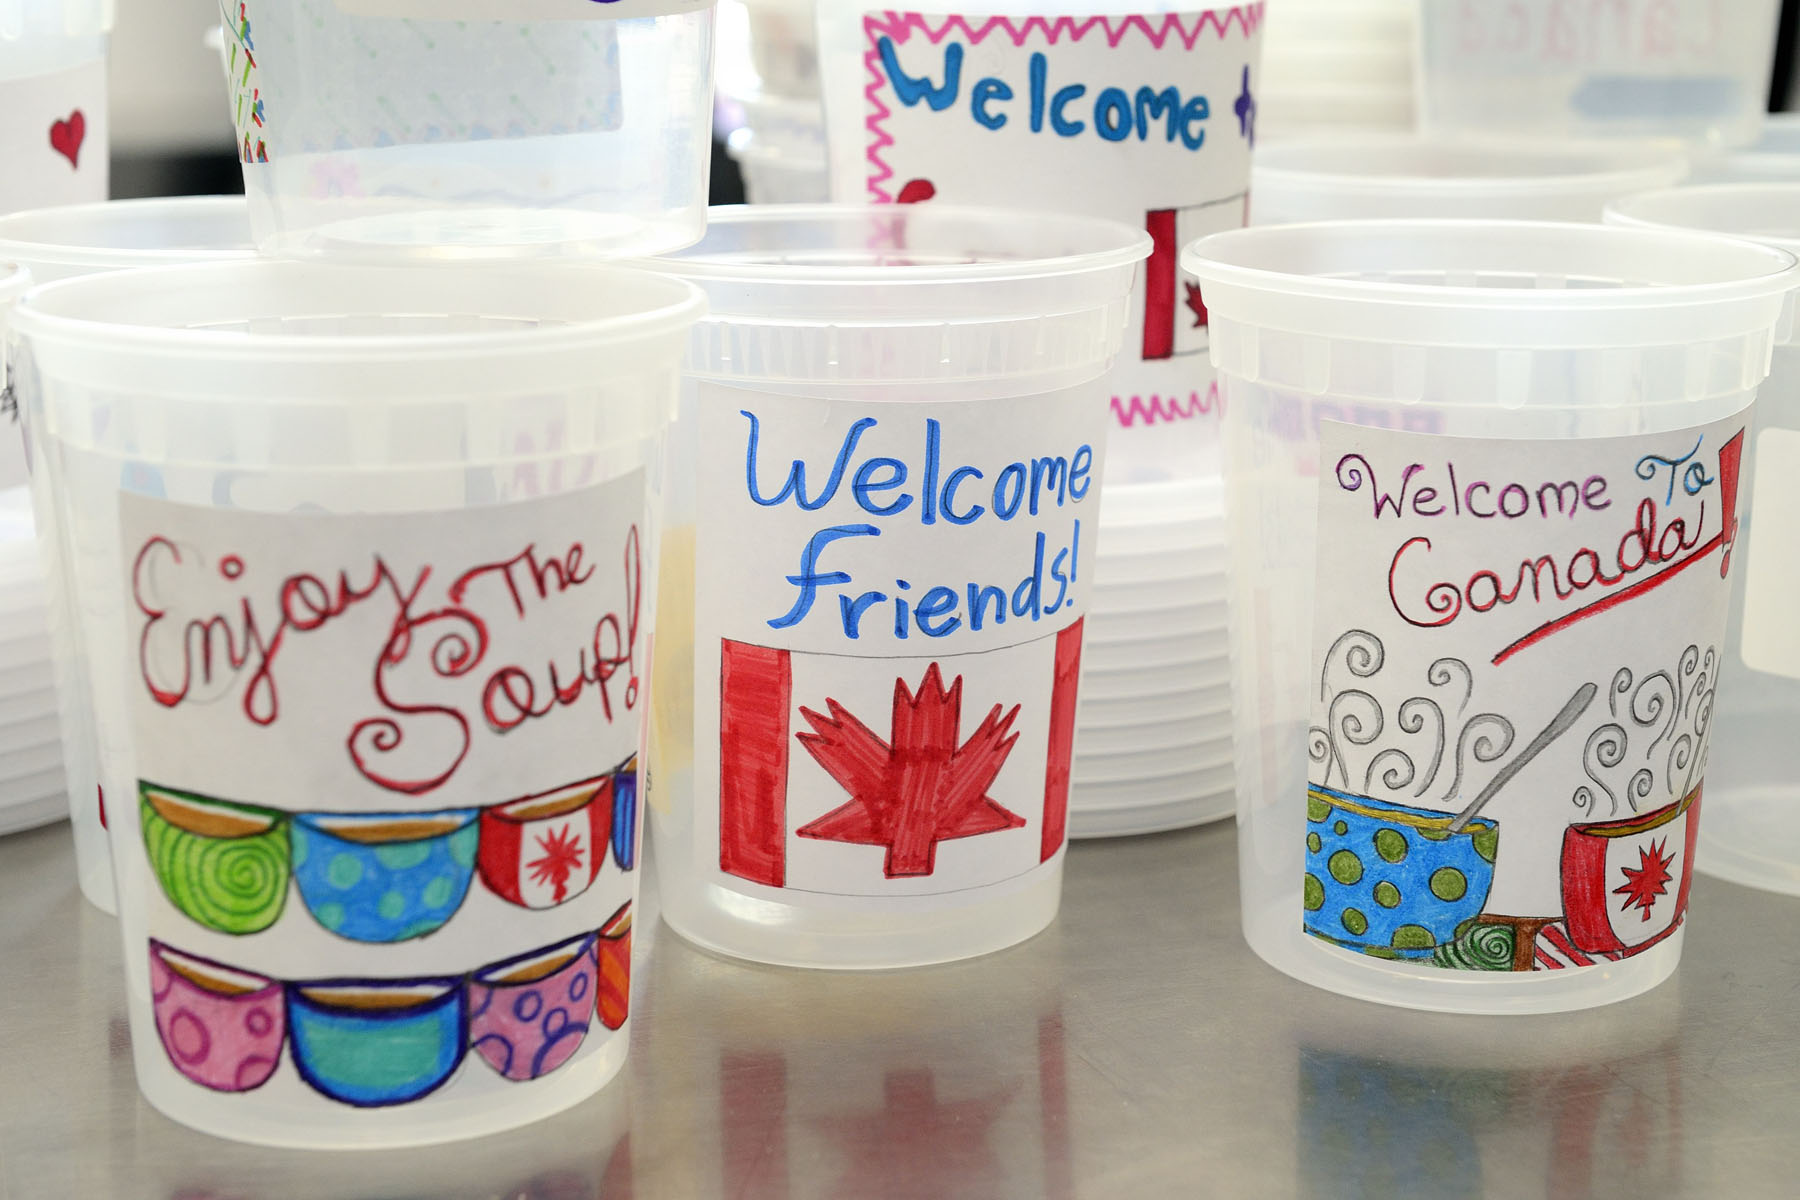 Labels were made by Ottawa elementary school children to provide a warm welcome to newly arrived Syrian refugees.